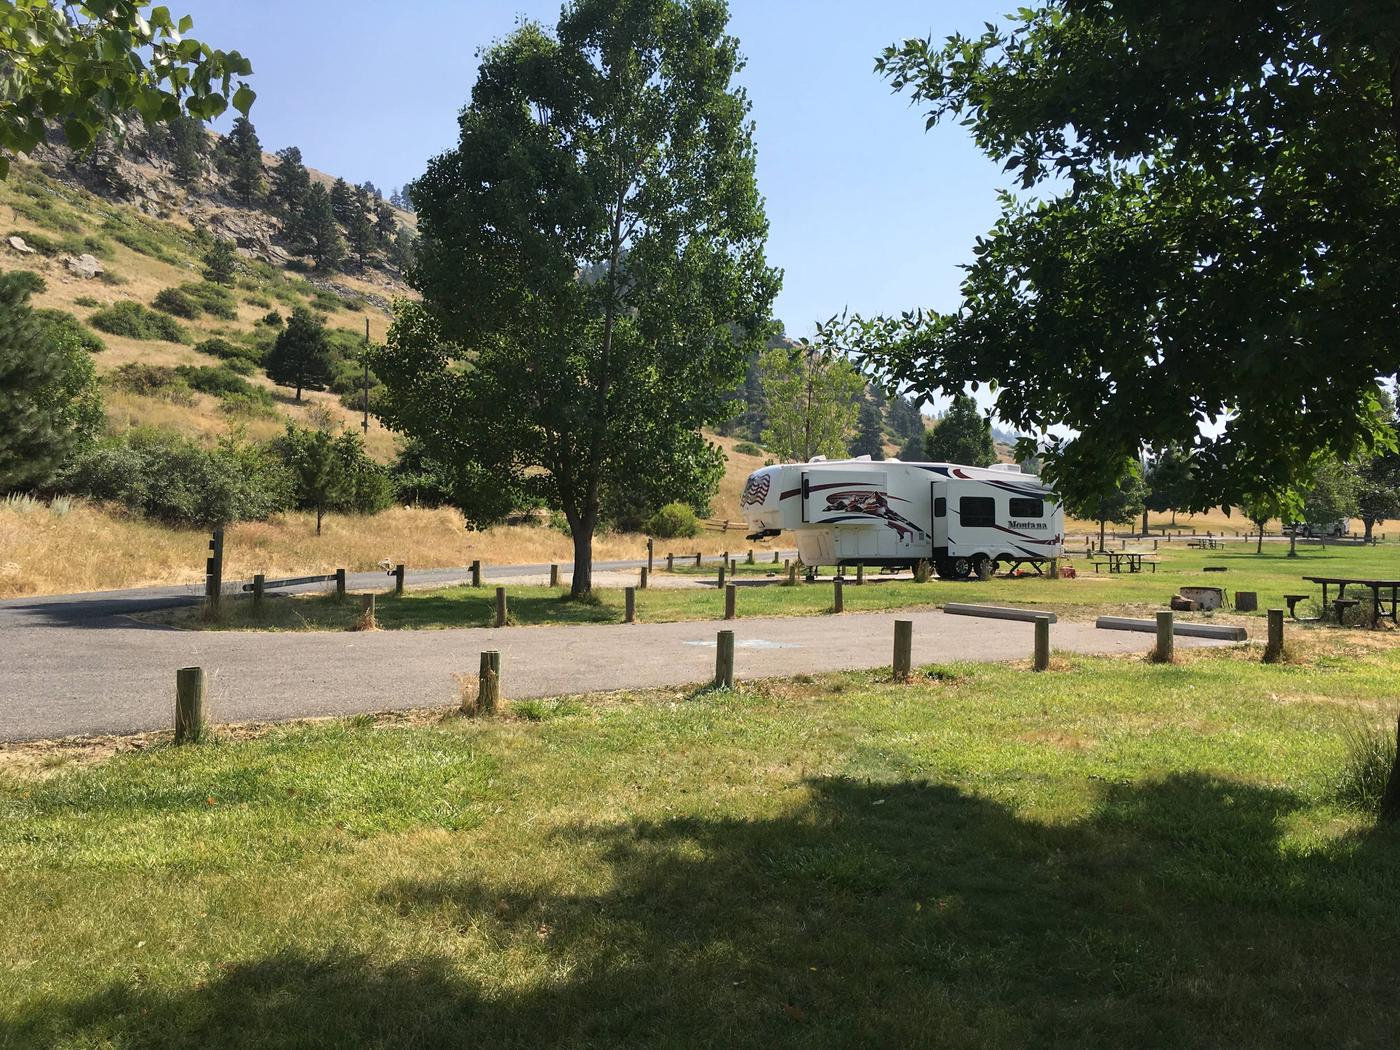 Side view of ADA site that is paved at Holter Lake Campground. Site 26 has paved access to the site. Picnic table and fire pit are at the far end of the campsite.Site 26 BLM Holter Lake Campground